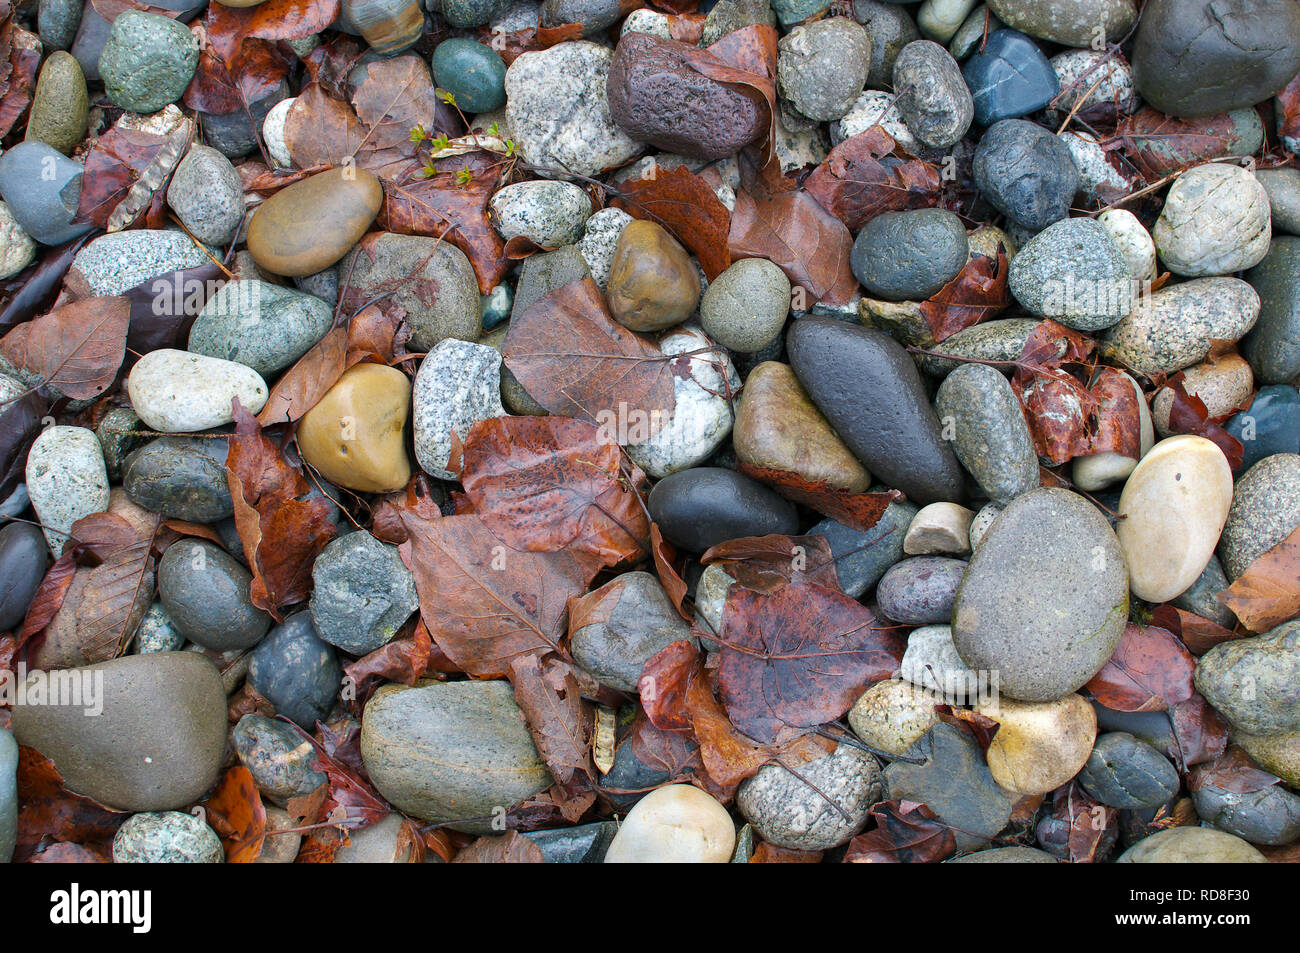 Smooth Landscaping Rocks with Fall Leaves. Stock Photo